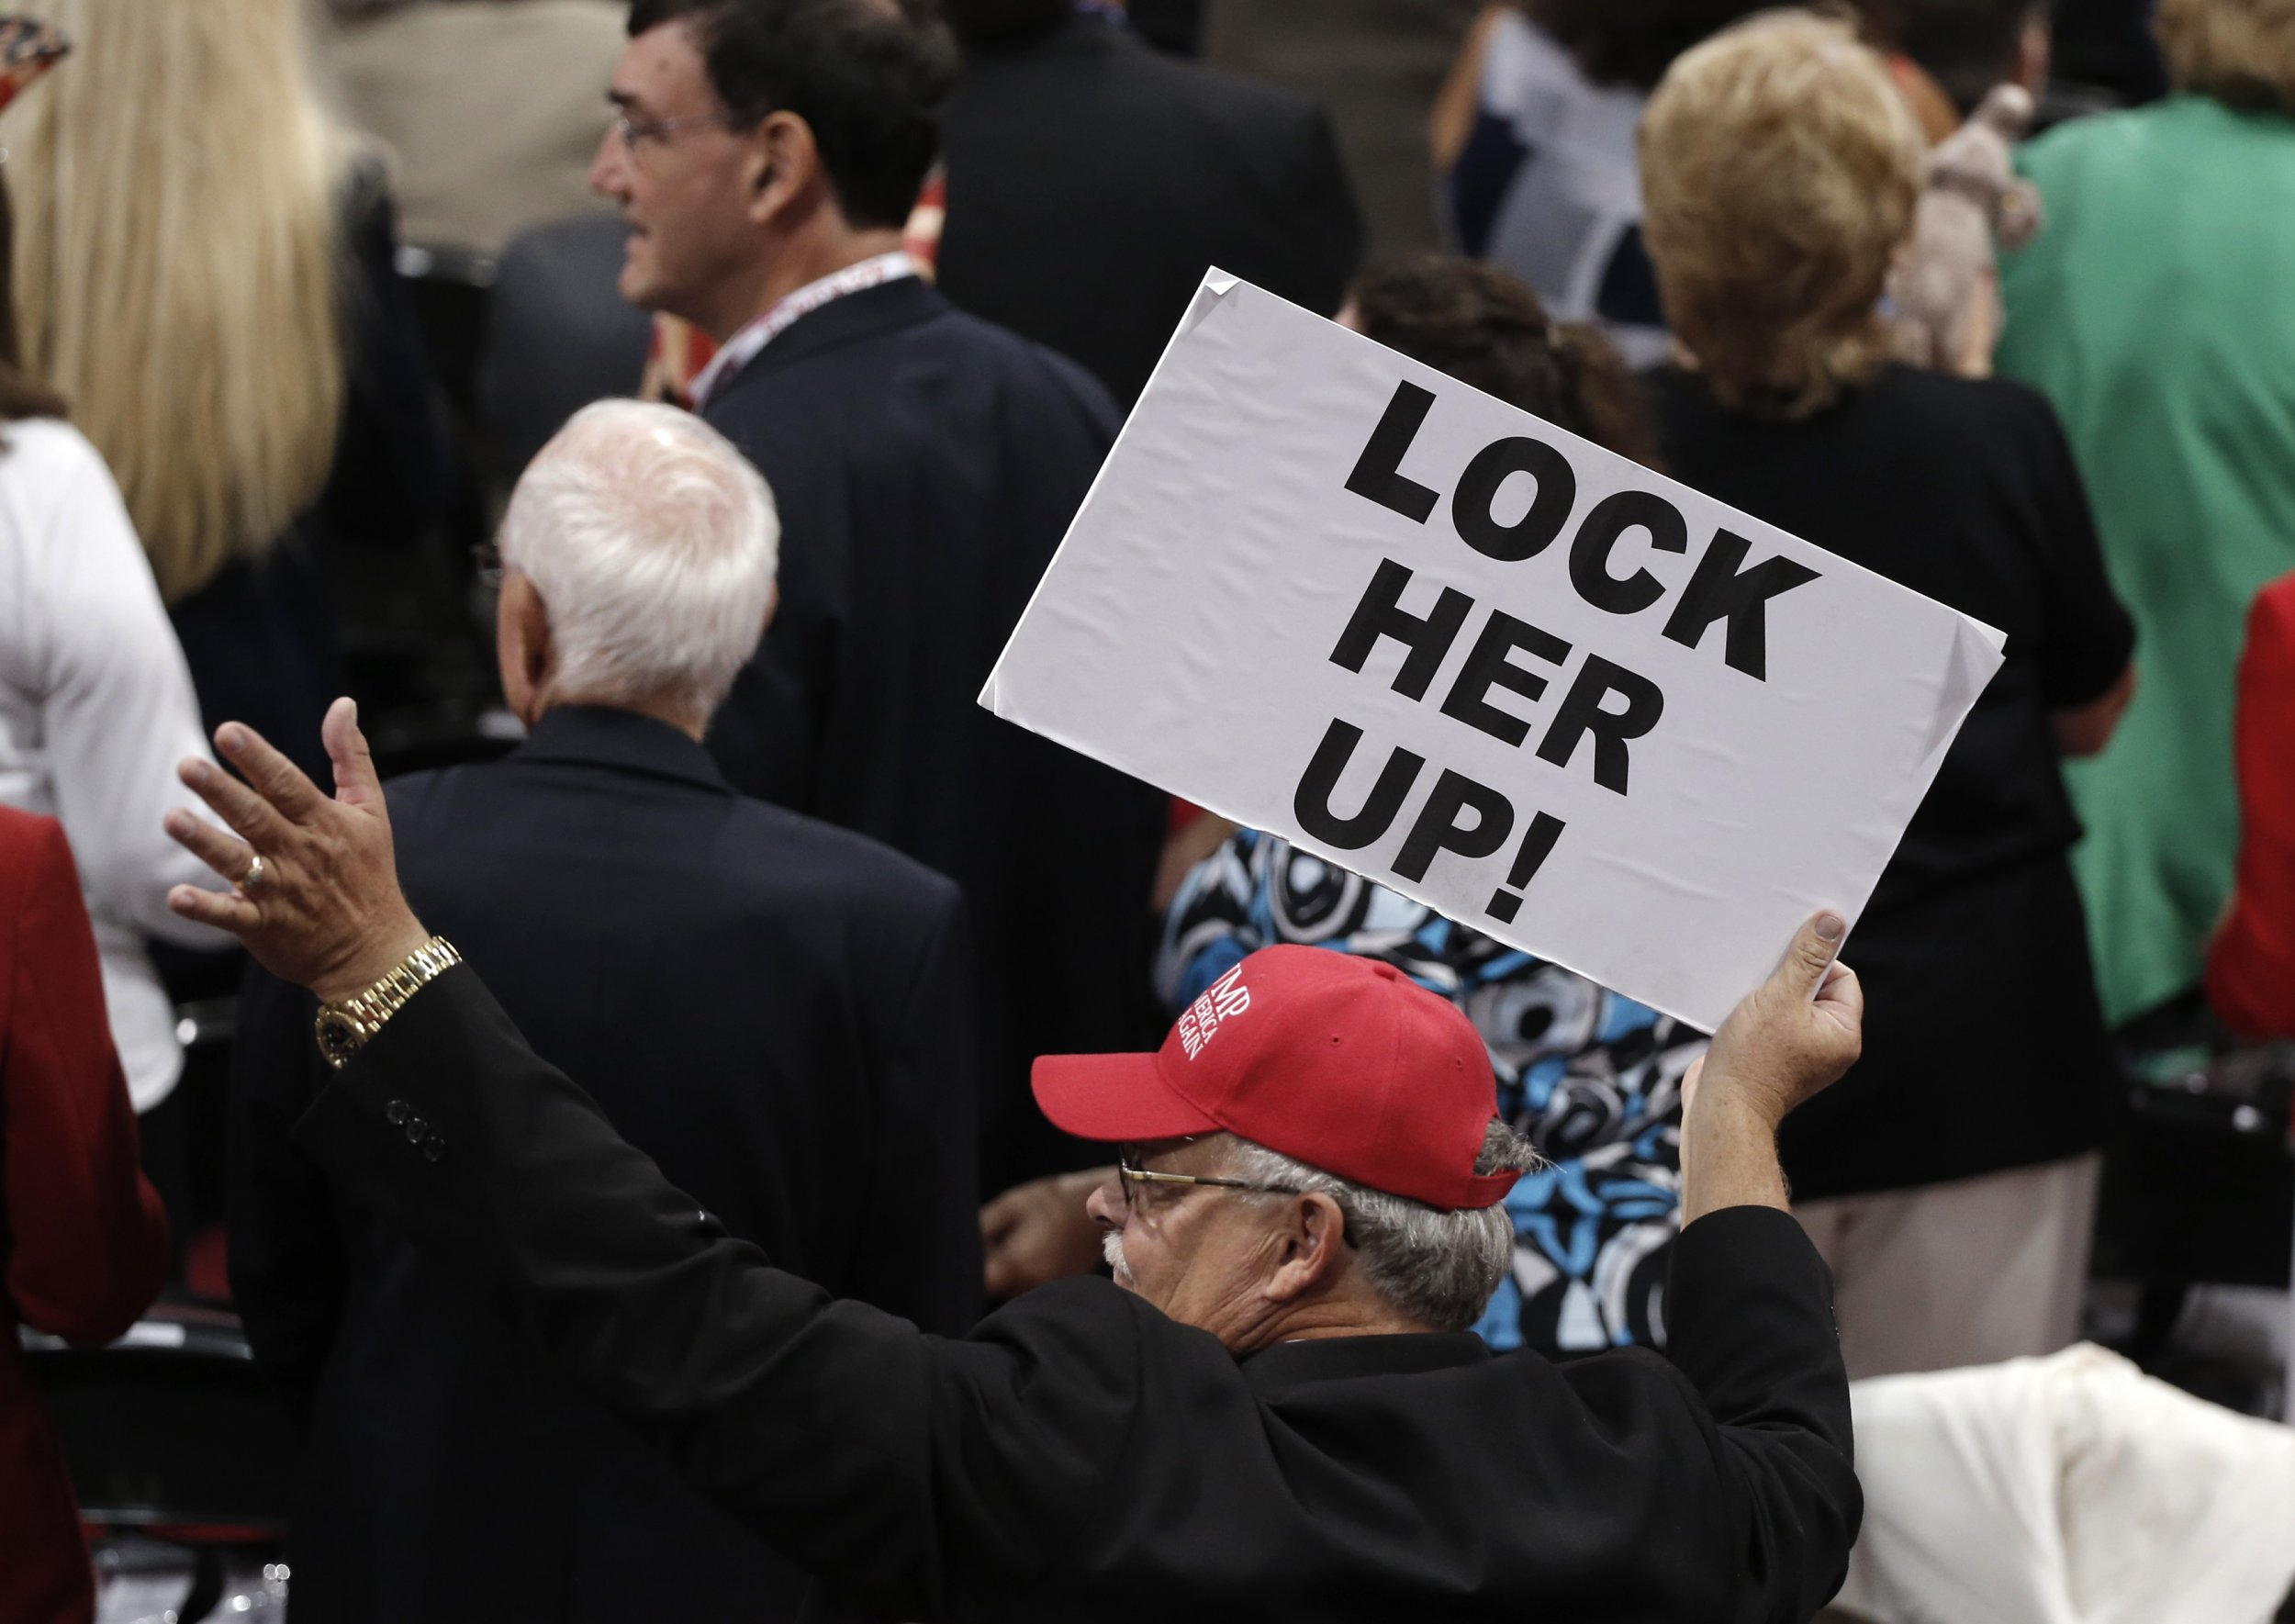 0720_Lock_her_up_slogan_Hillary_Clinton_02